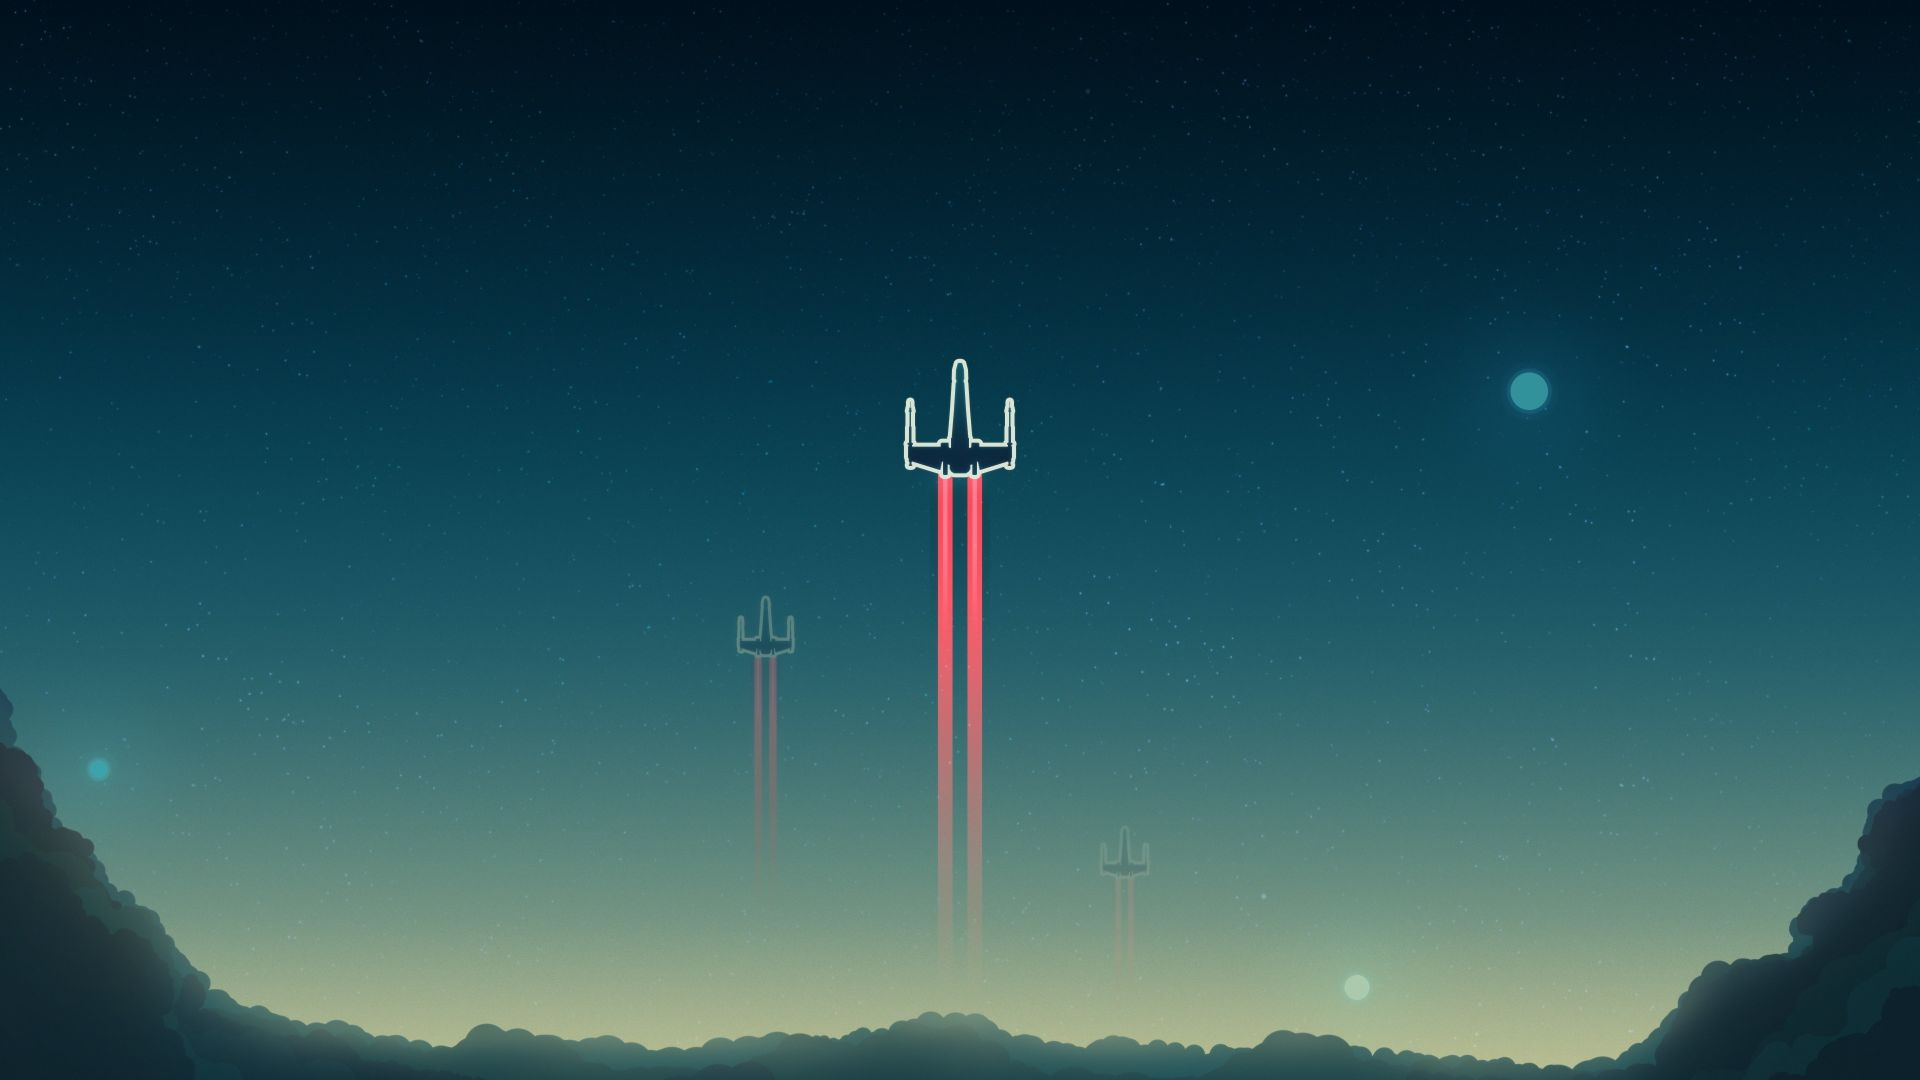 Desktop Wallpaper X Wing Aircraft Star Wars Starfighter Video Game Minimal 4k Hd Image Picture Background 763c22